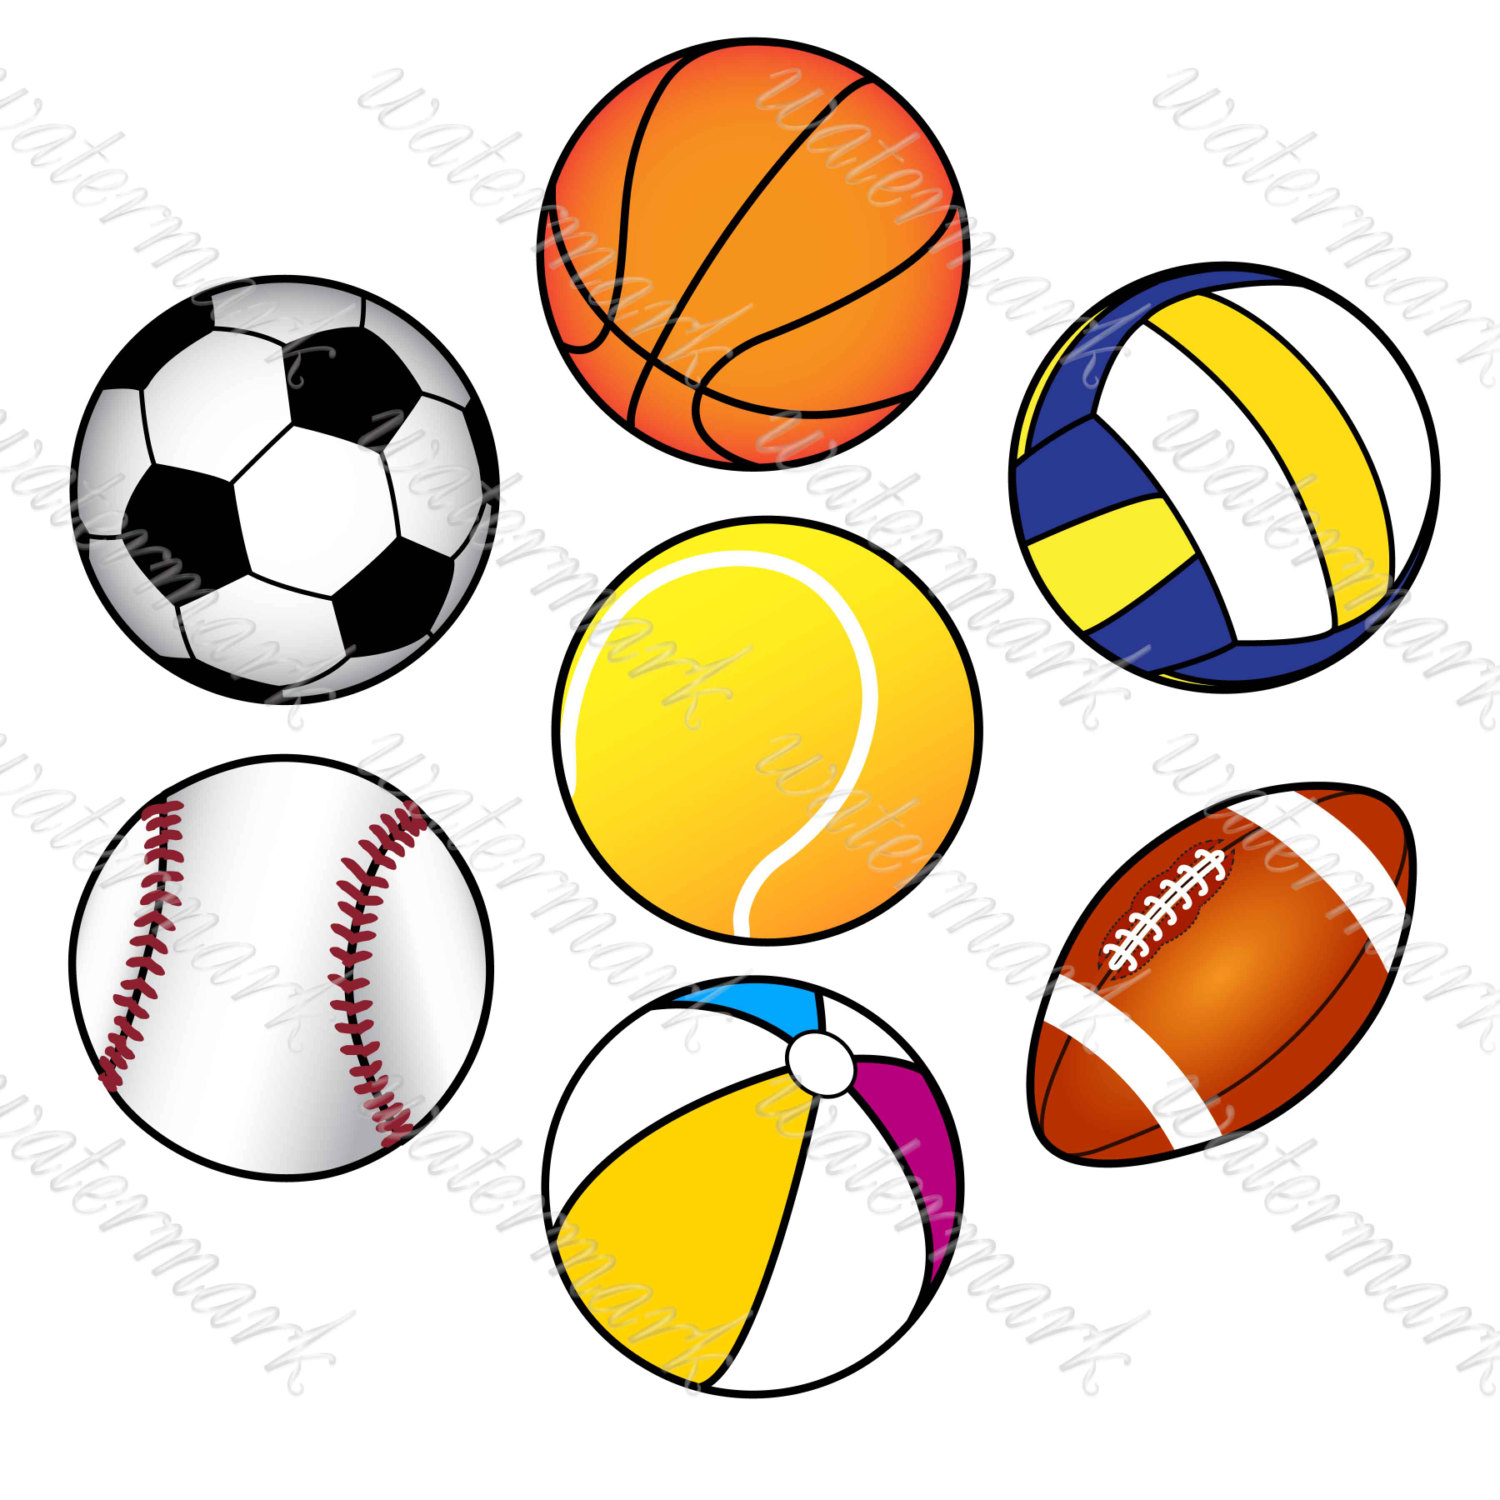 sports balls clipart at getdrawings com free for personal use rh getdrawings com clipart images of sports balls